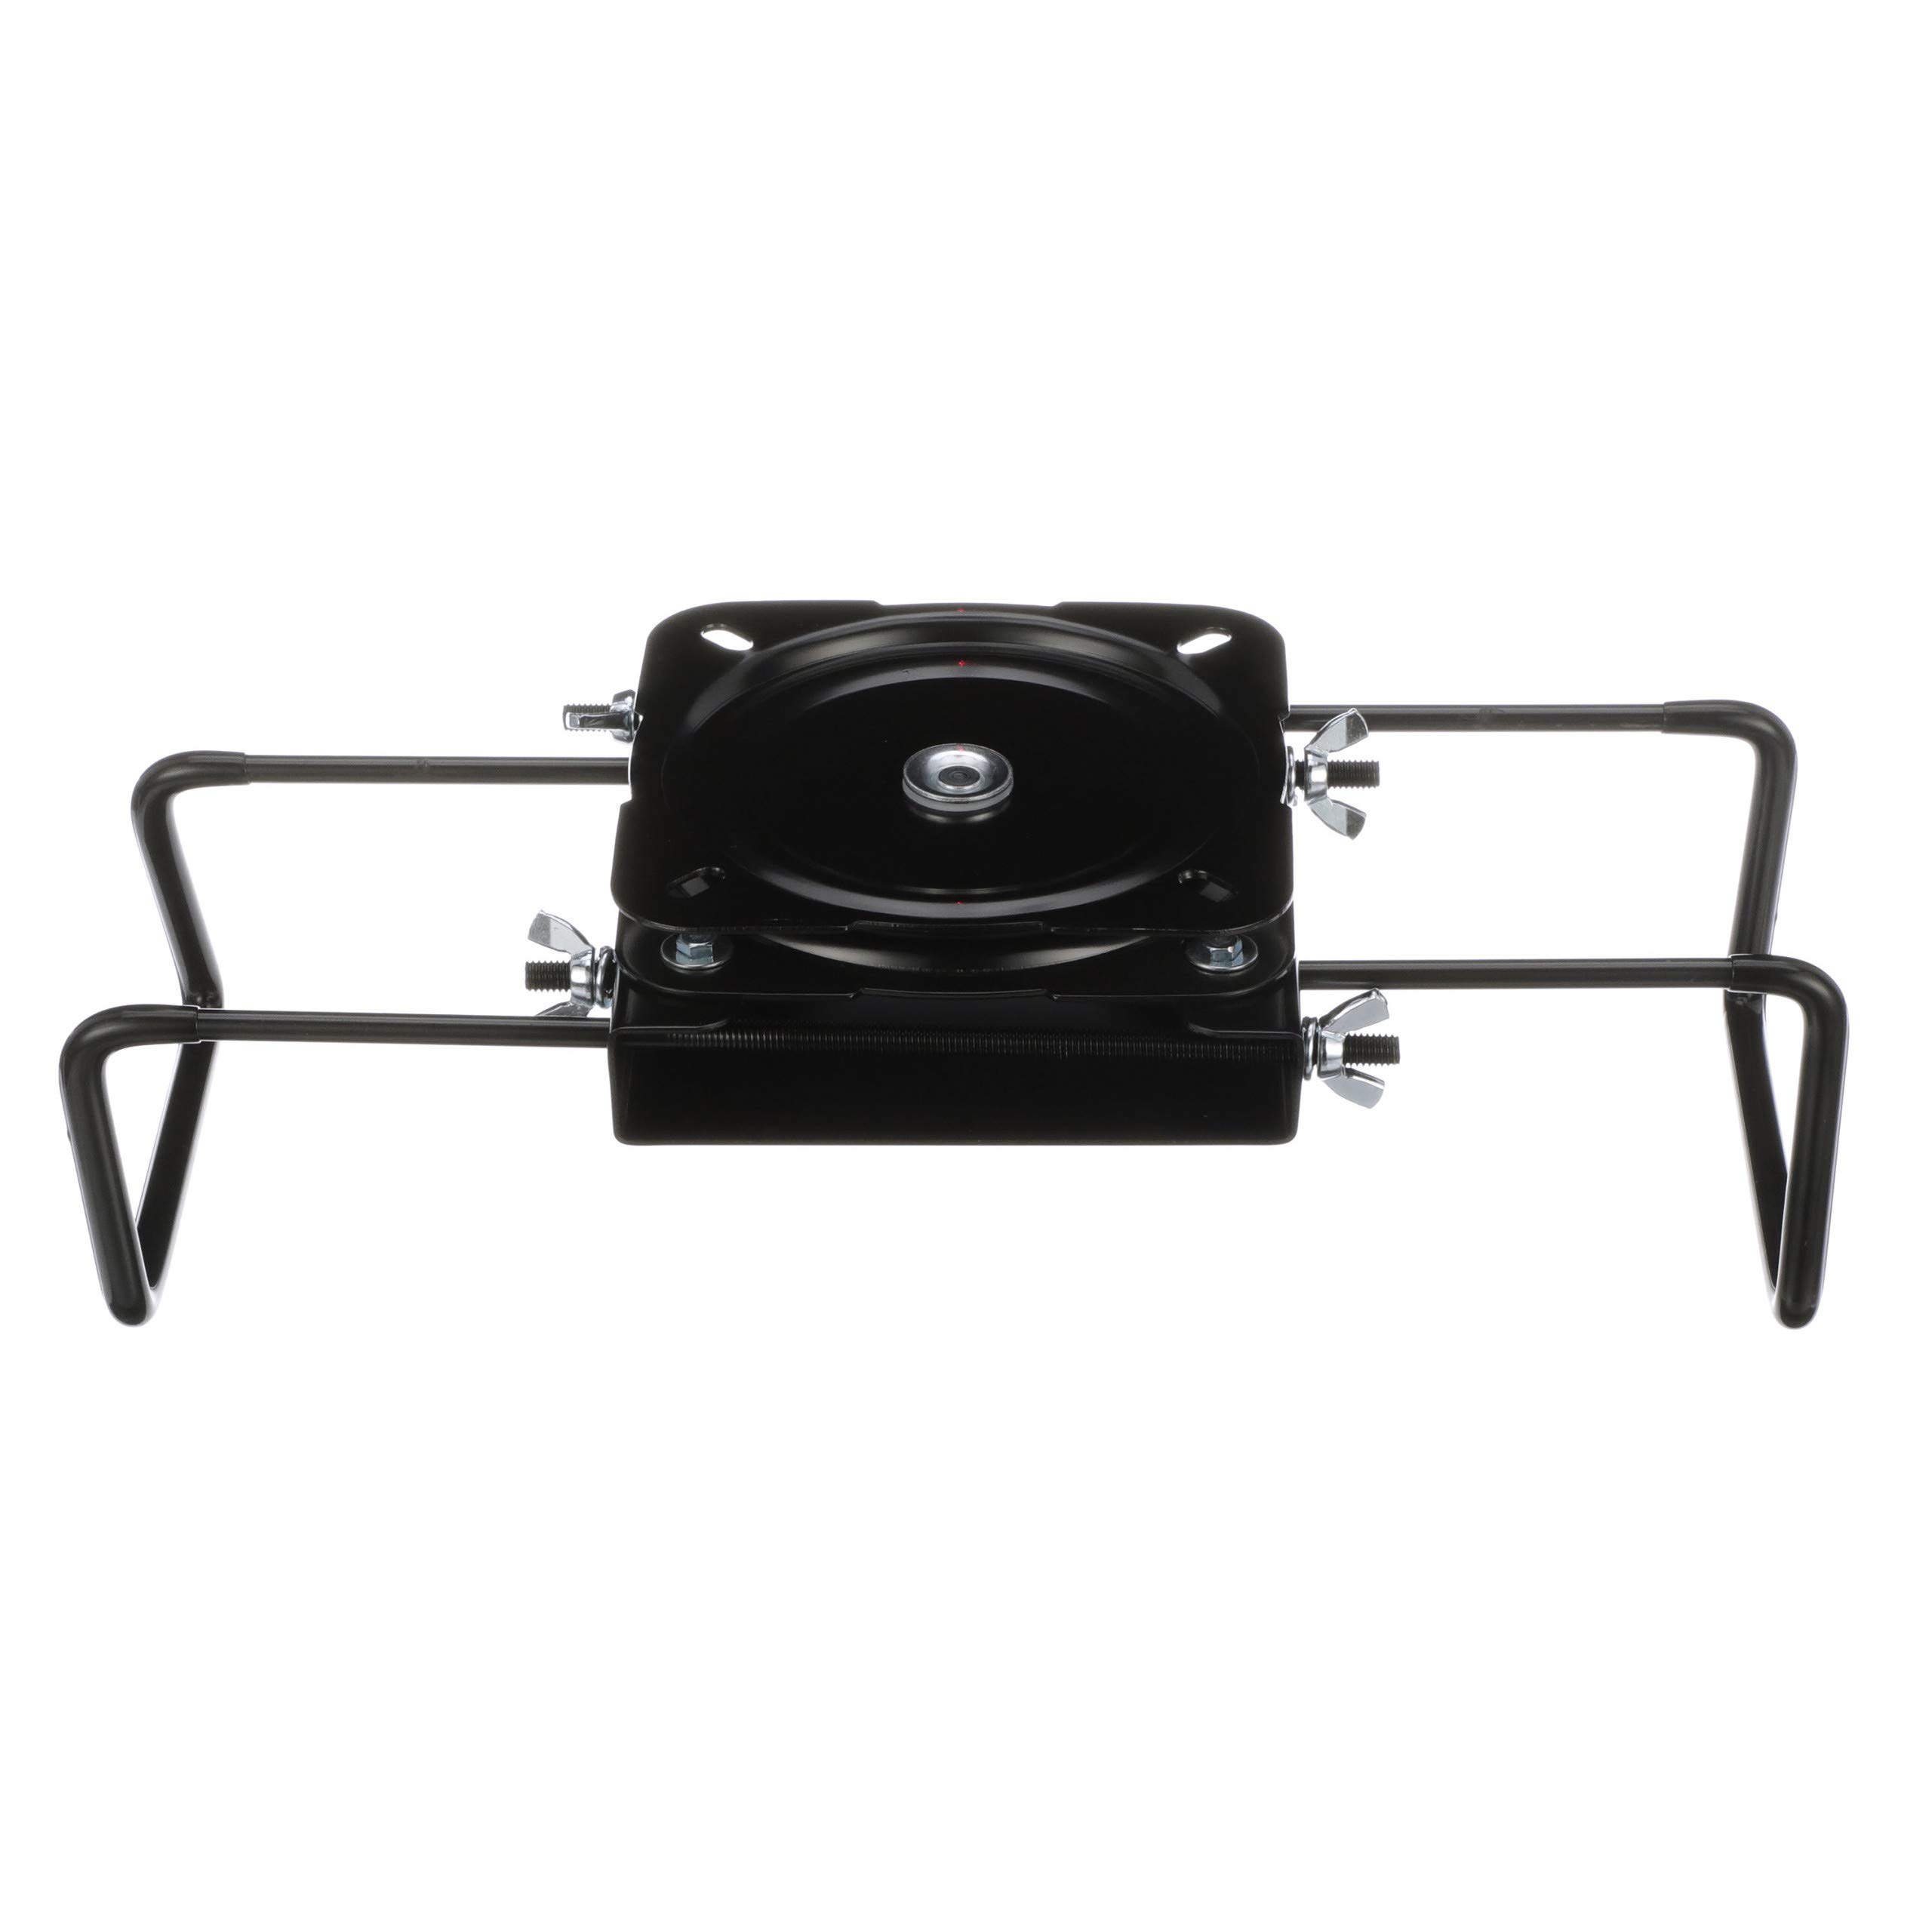 Attwood 15700-3 Corporation Seat Mount Clamp-On With Swivel by attwood